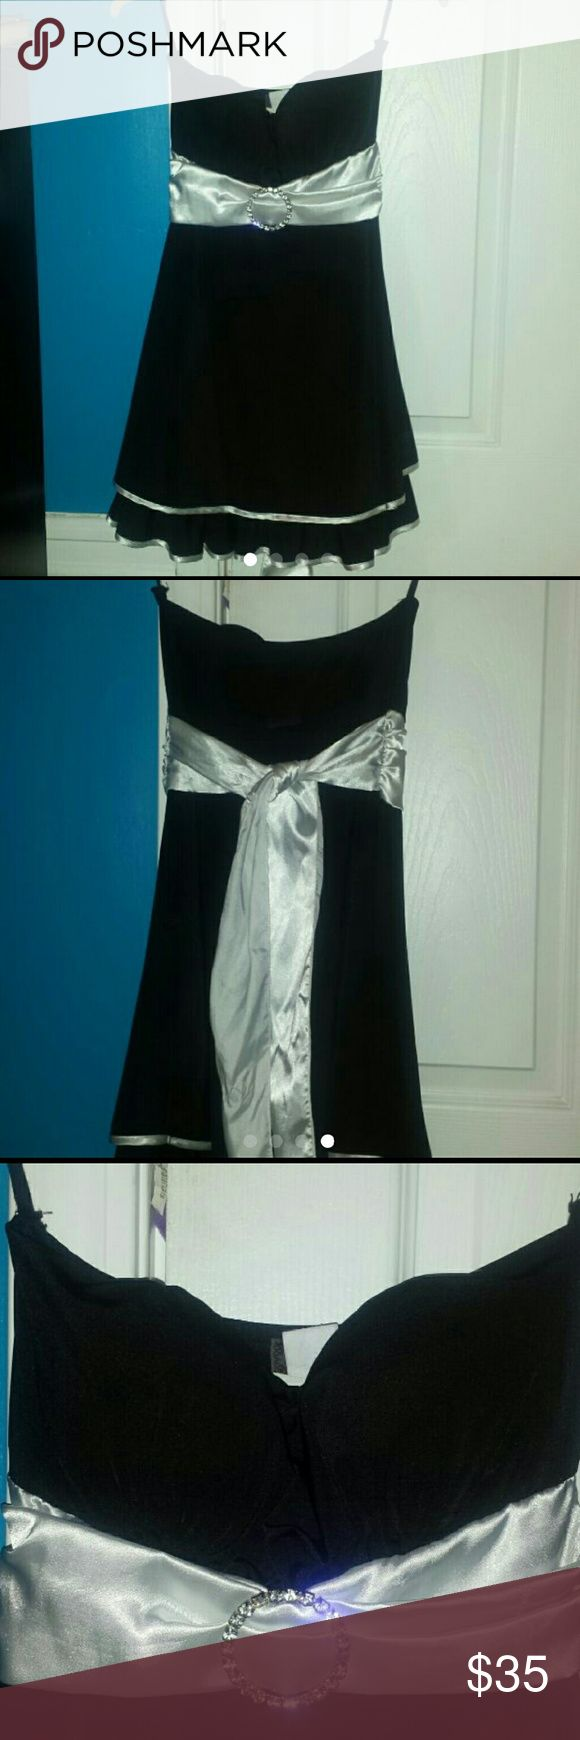 Strapless Silky Black/Silver Mini Dress This dress is too small for me; It's only been worn once by my sister.  Happy Poshing! :) Feel free to make an offer! Joppa Dresses Mini